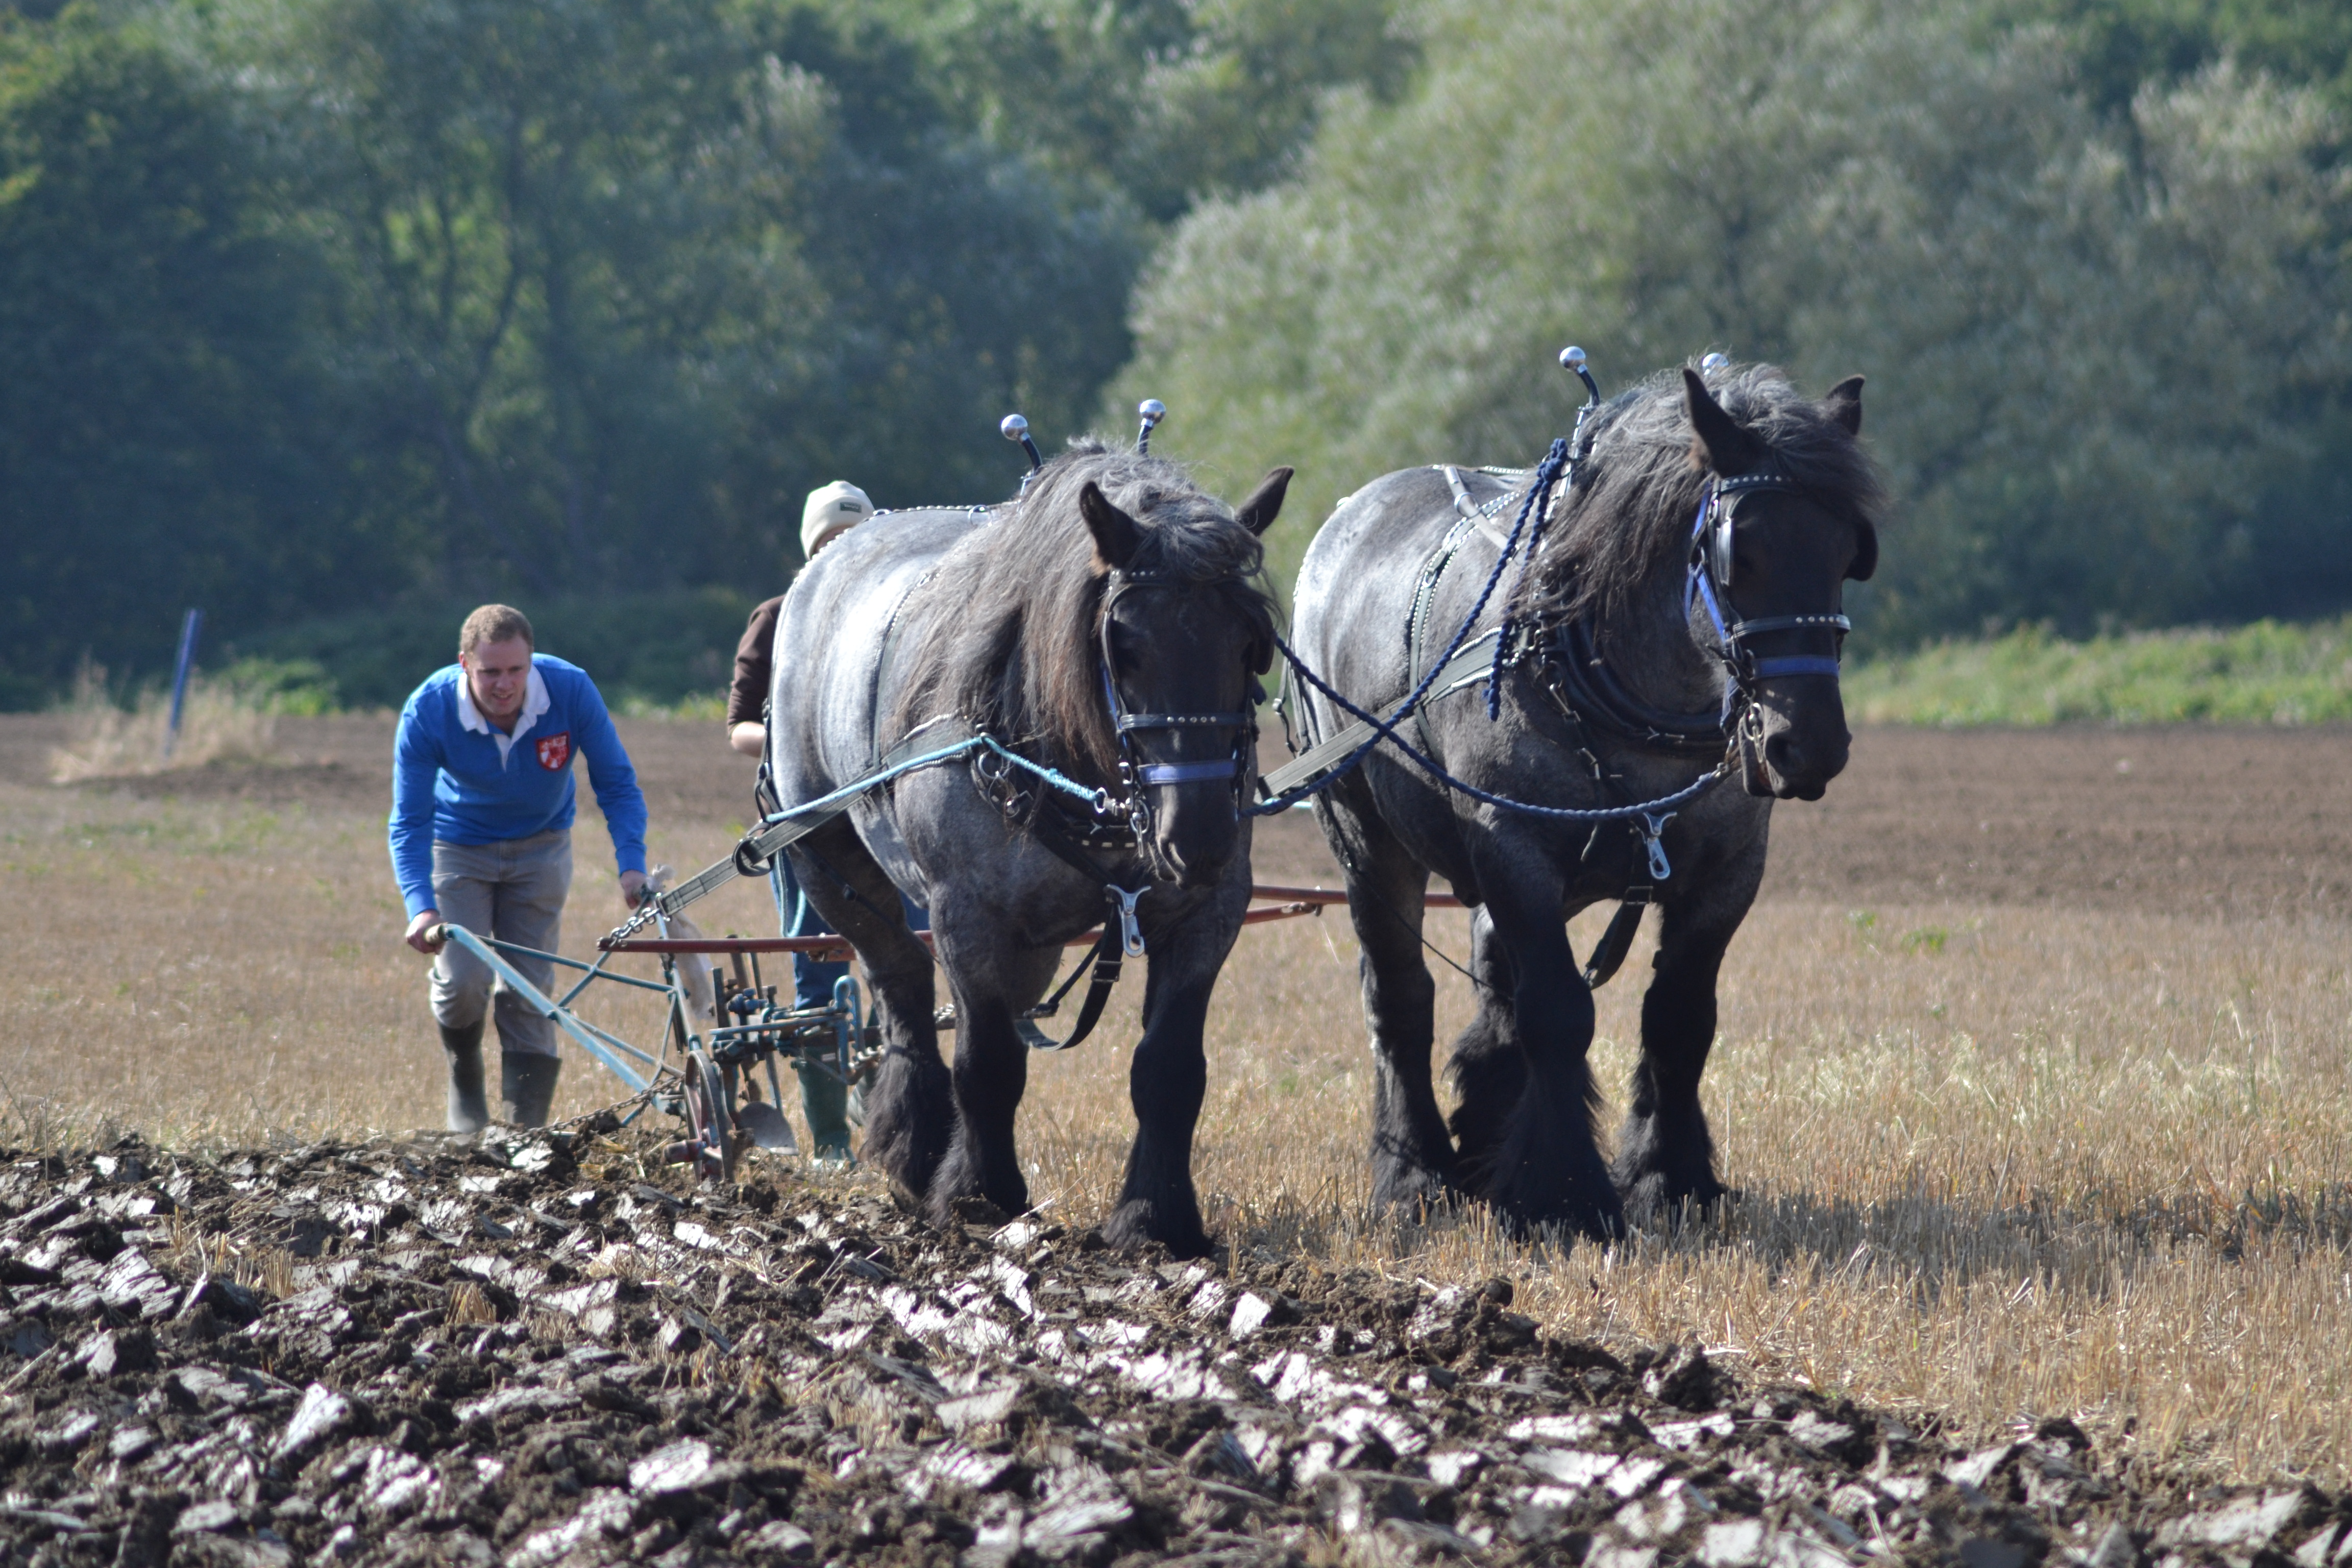 Annie and Casper ploughing